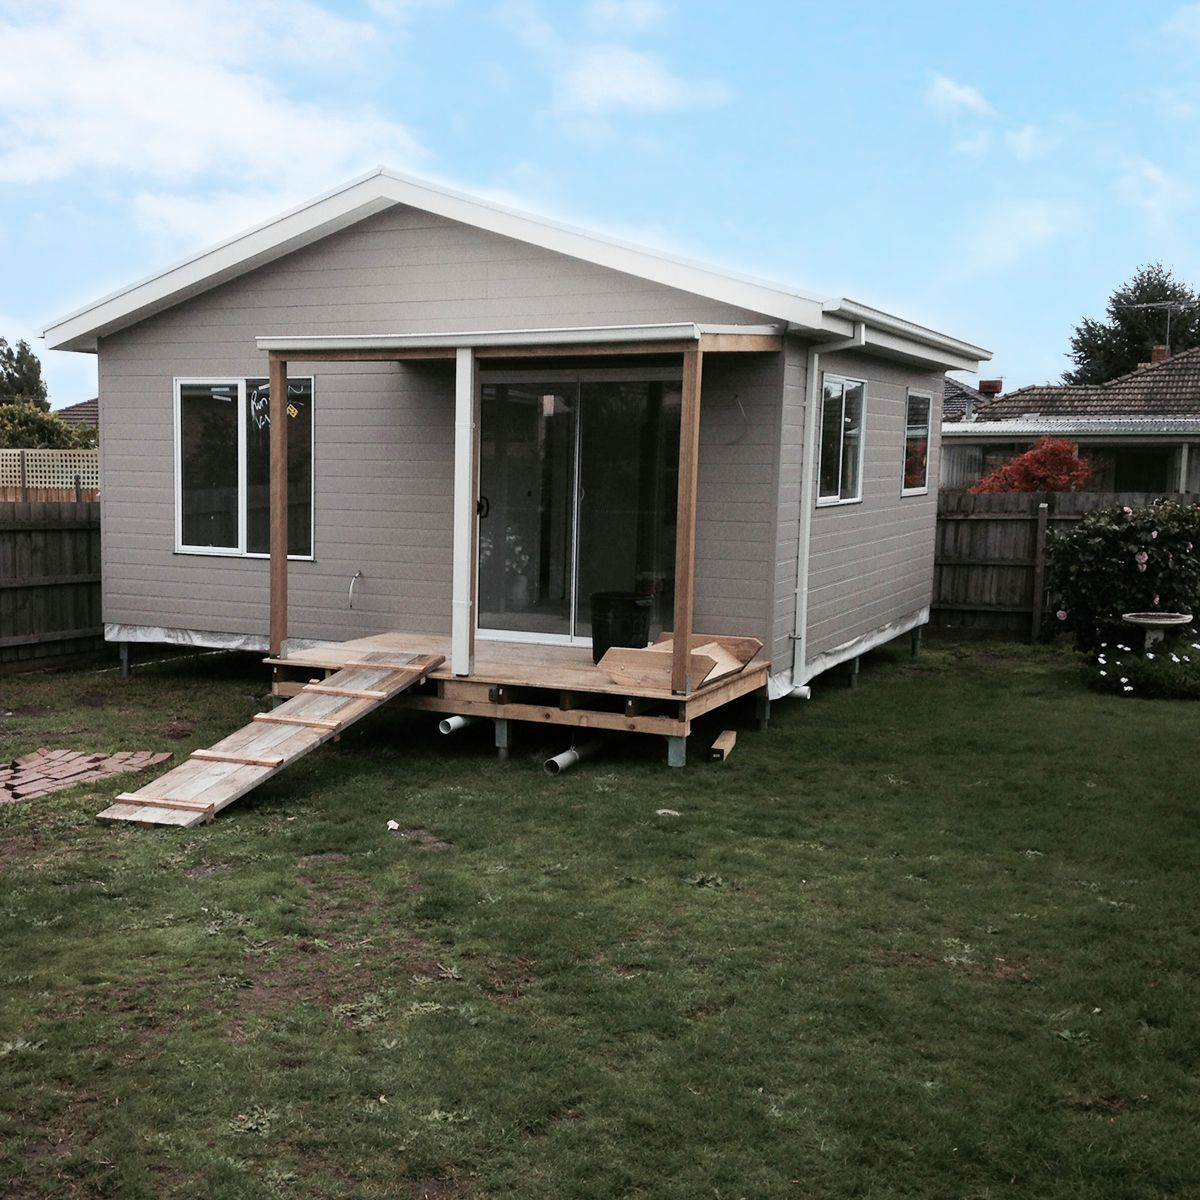 A Granny Flat under construction in Oakleigh, Victoria ...